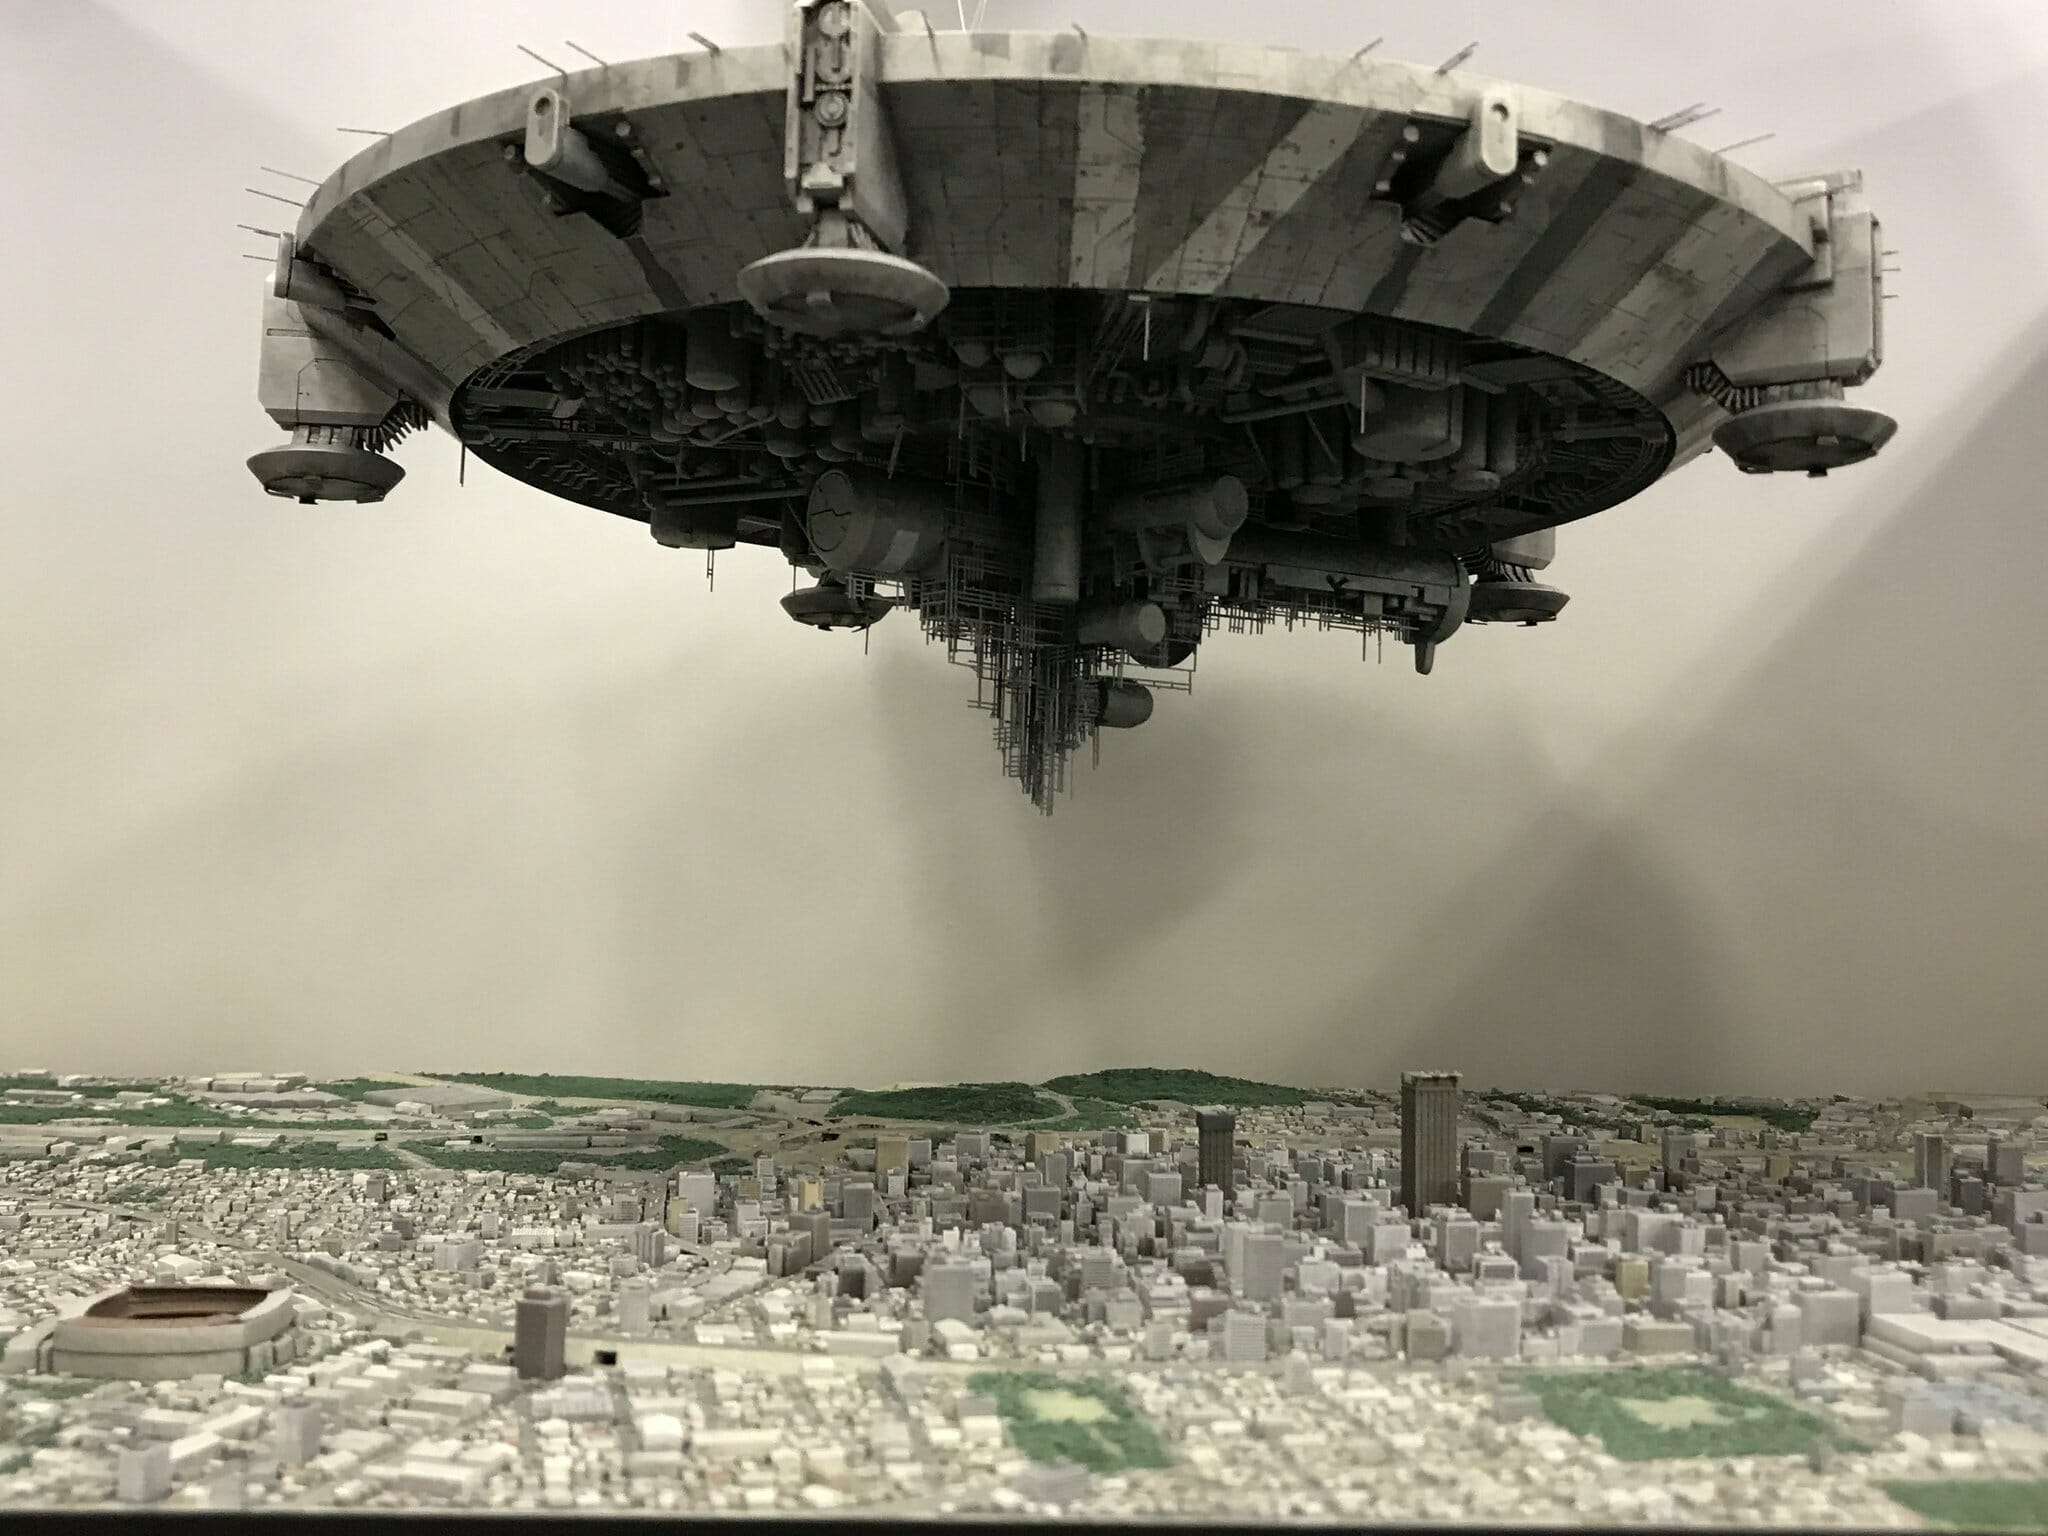 Stunning detail on this District 9 diorama